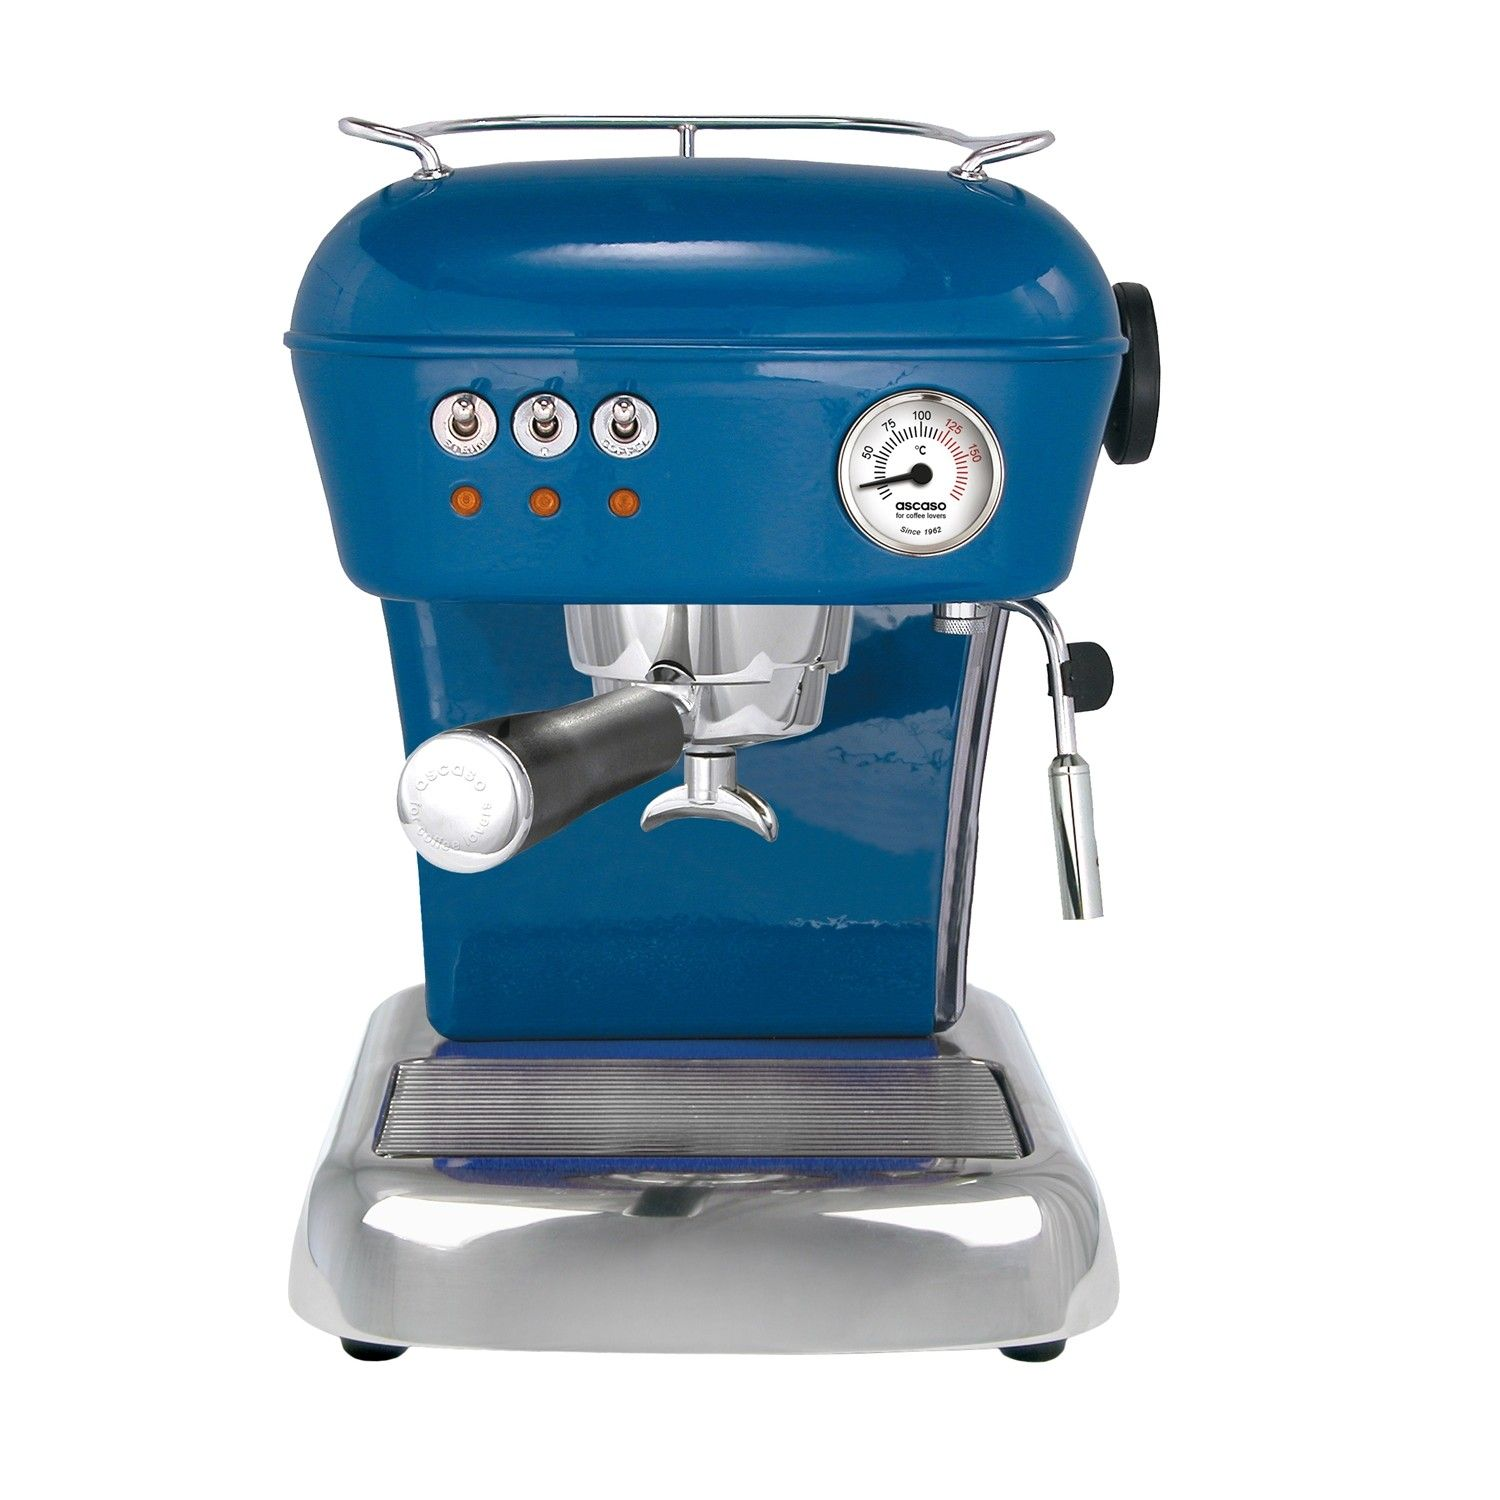 Coffee Solves Everything Even Blue Monday Shop The Ascaso Dream Machine At Leekes Www Leekes Co Uk Ascaso Dream Machine Blue エスプレッソマシン カフェ コーヒー